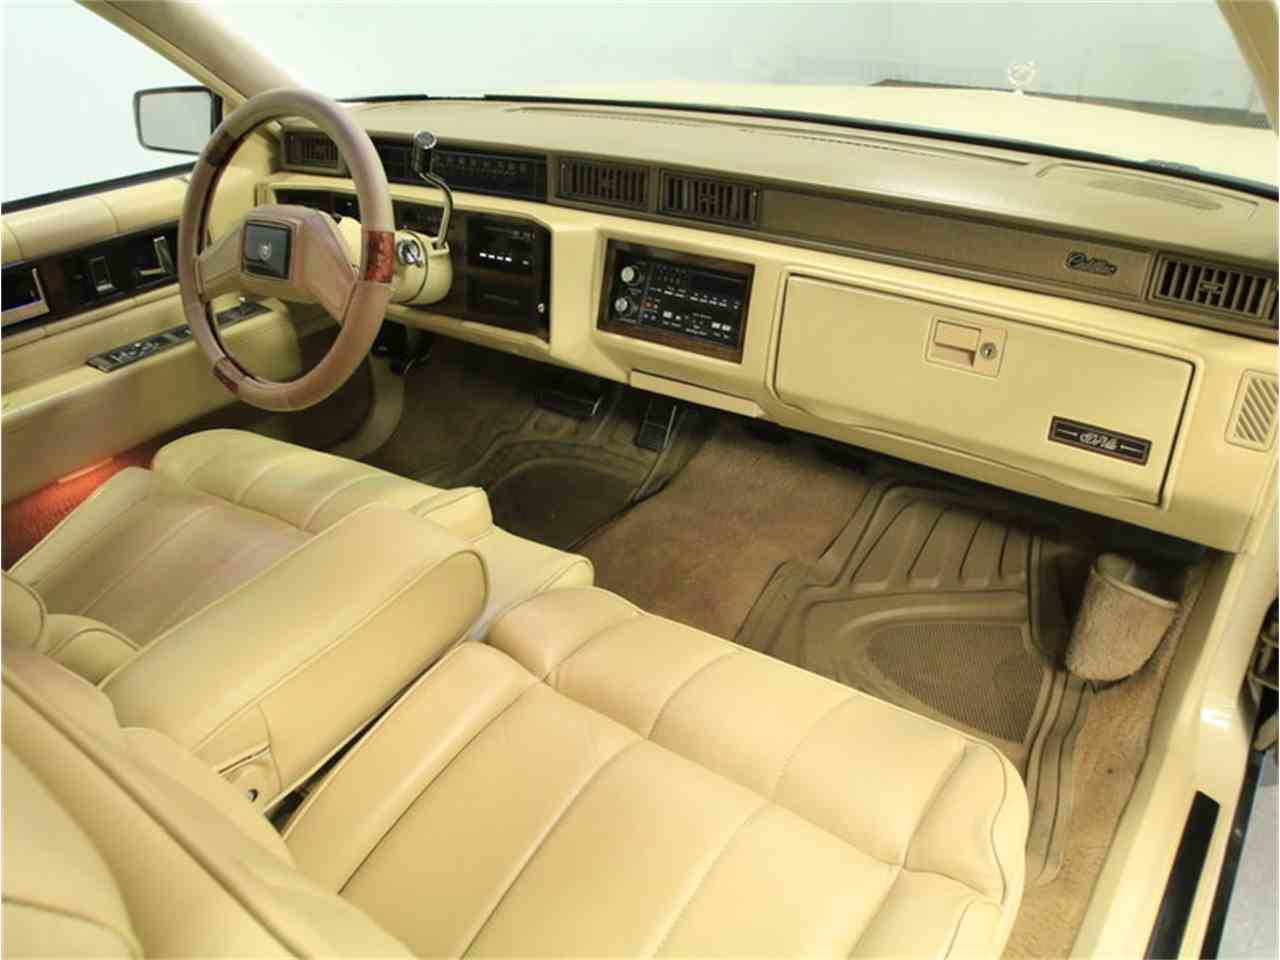 Large Picture of '87 Cadillac Coupe DeVille located in North Carolina - $6,995.00 Offered by Streetside Classics - Charlotte - IWQX